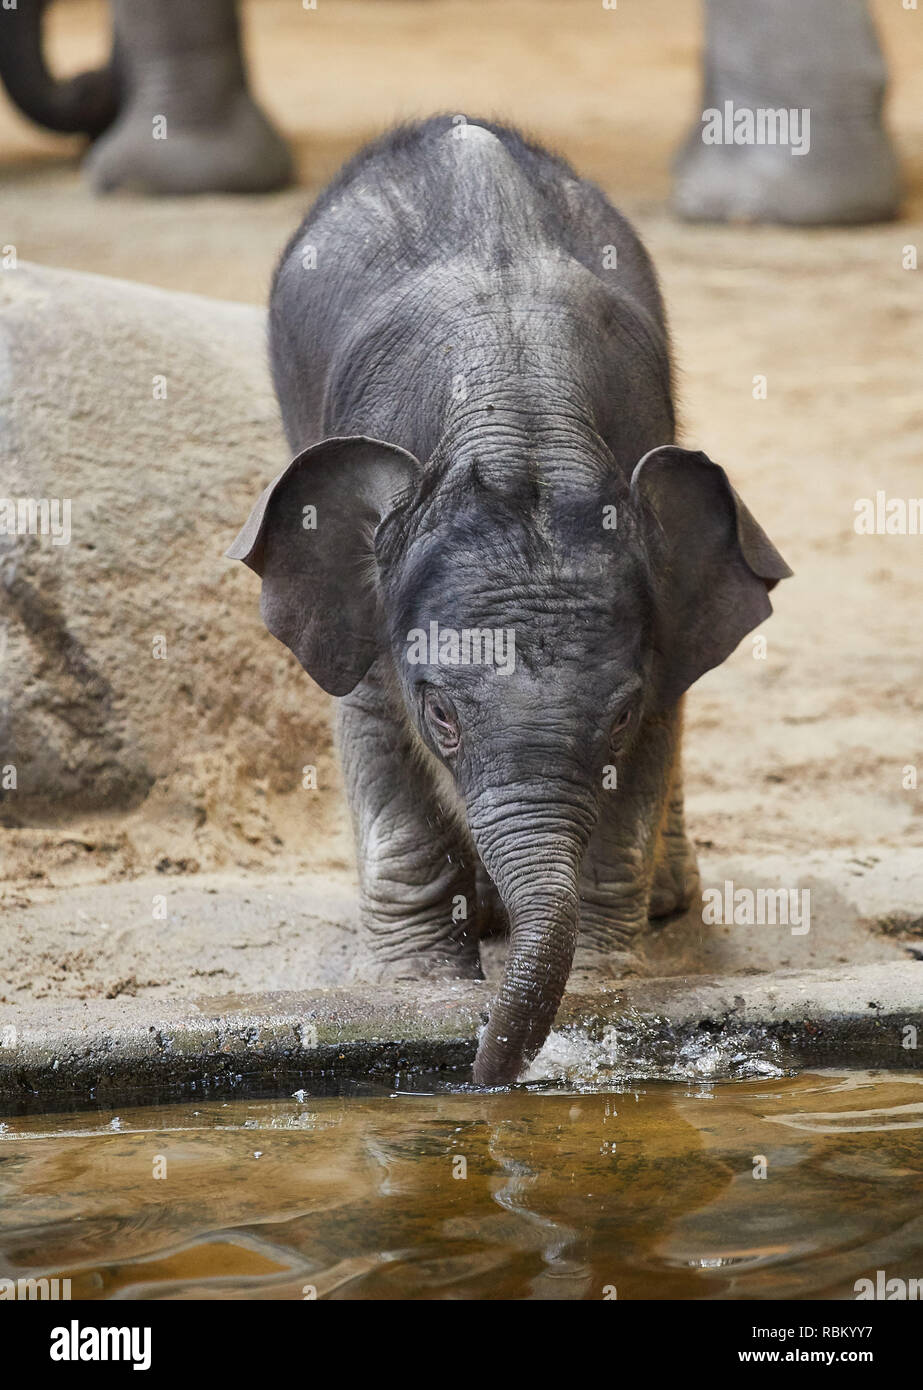 Hamburg, Germany. 11th Jan, 2019. The baby elephant with the name Santosh drinks during a press meeting to his official name announcement at Hagenbeck in the indoor enclosure. Santosh was born on Christmas Eve. Credit: Georg Wendt/dpa/Alamy Live News - Stock Image